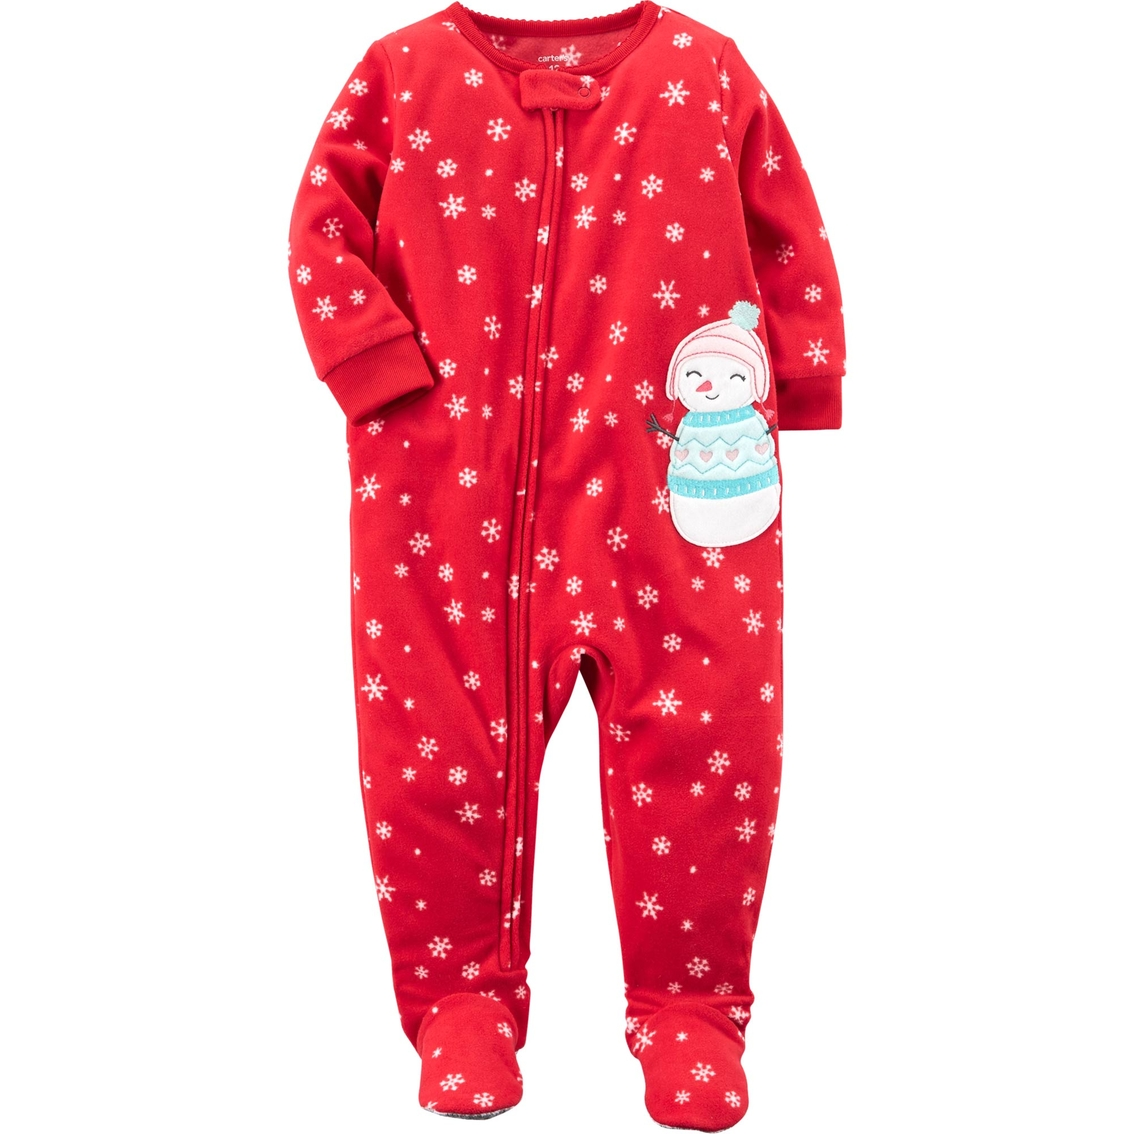 Carter s Infant Girls 1 Pc. Fleece Snowman Pajamas With Feet  74faed9d0